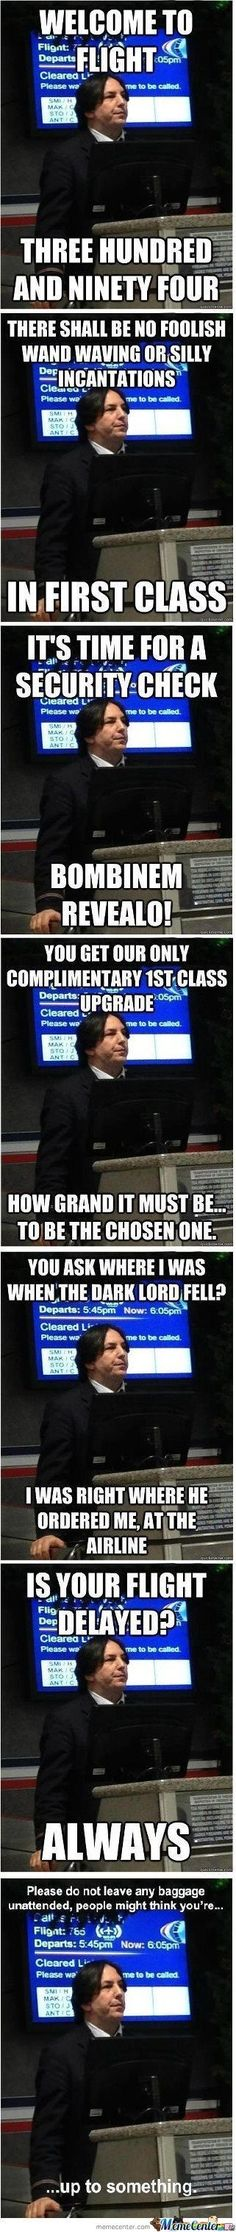 Flight Attendant Snape. Too funny.